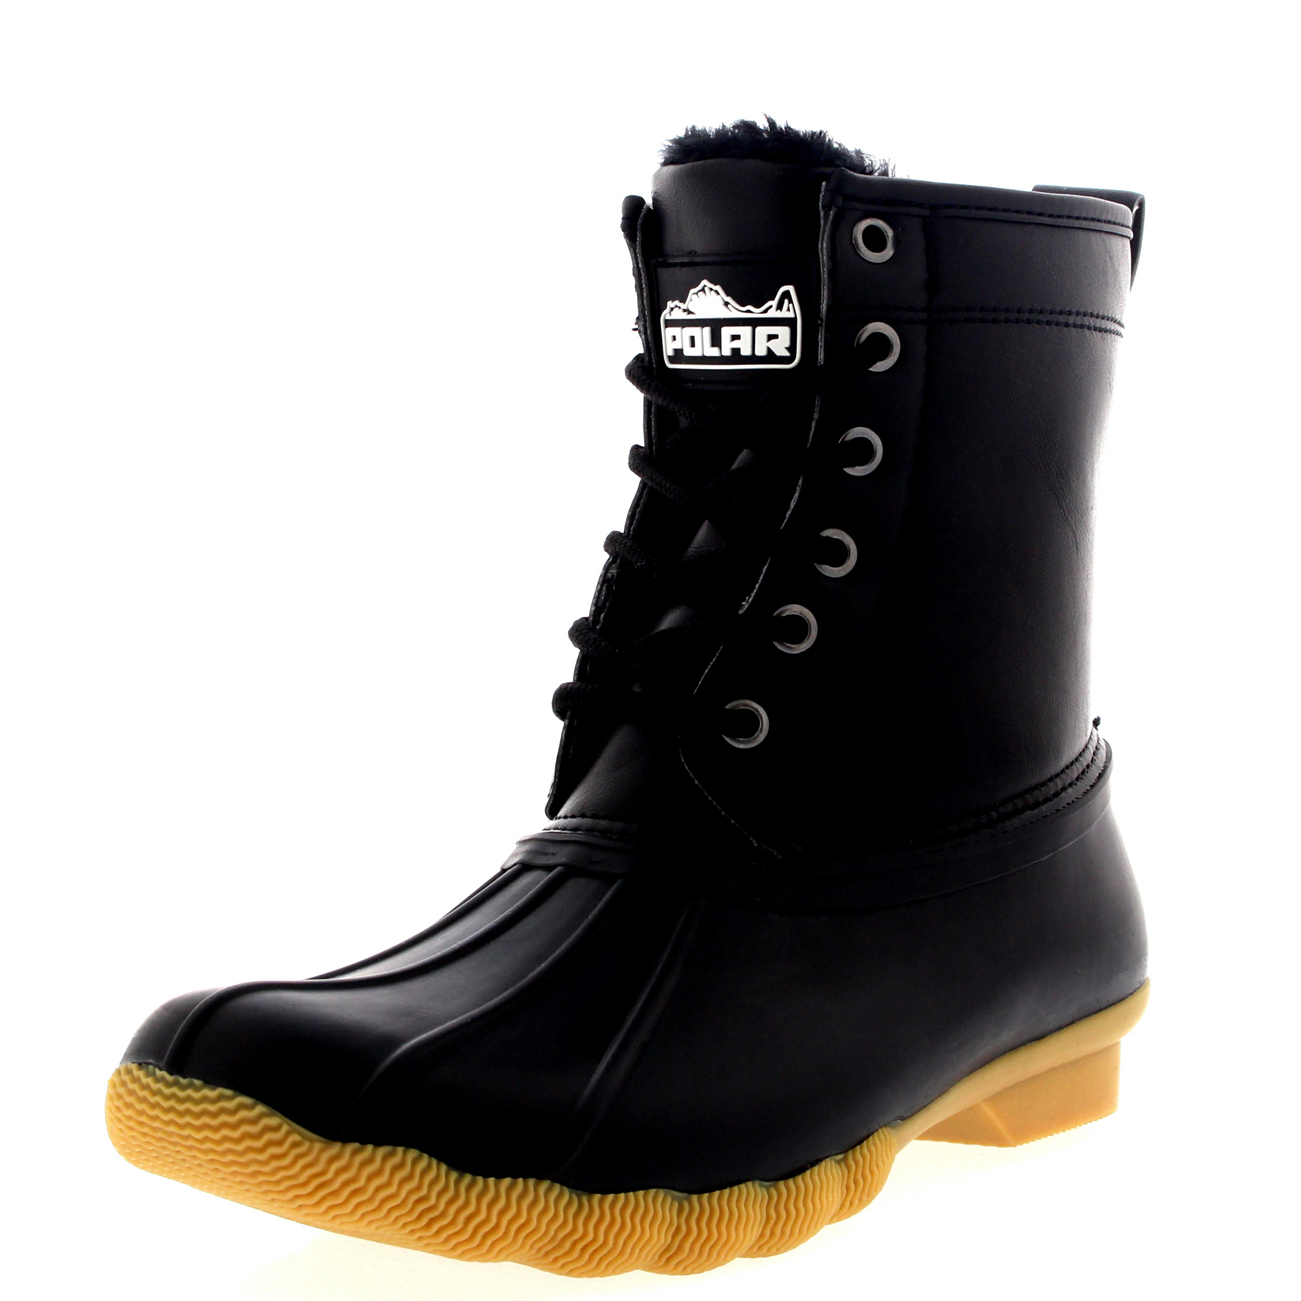 Rubber Snow Boots WlZc63LF